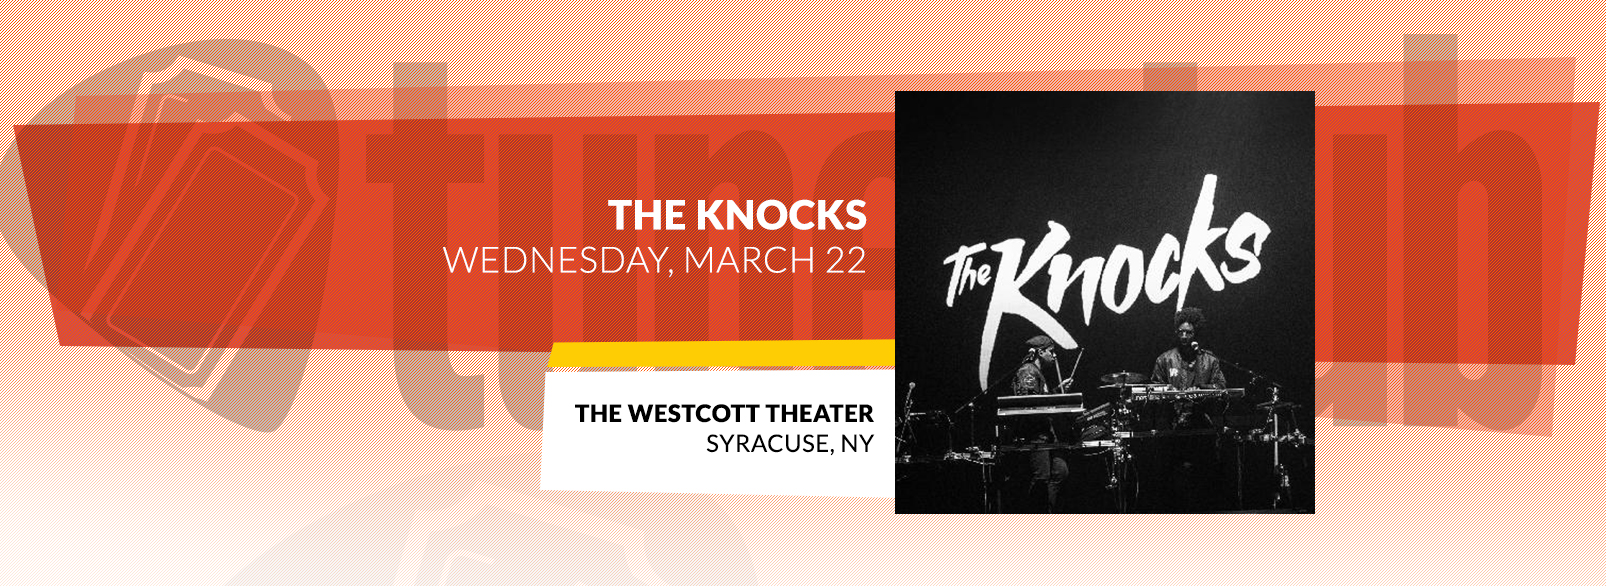 The Knocks @ The Westcott Theater